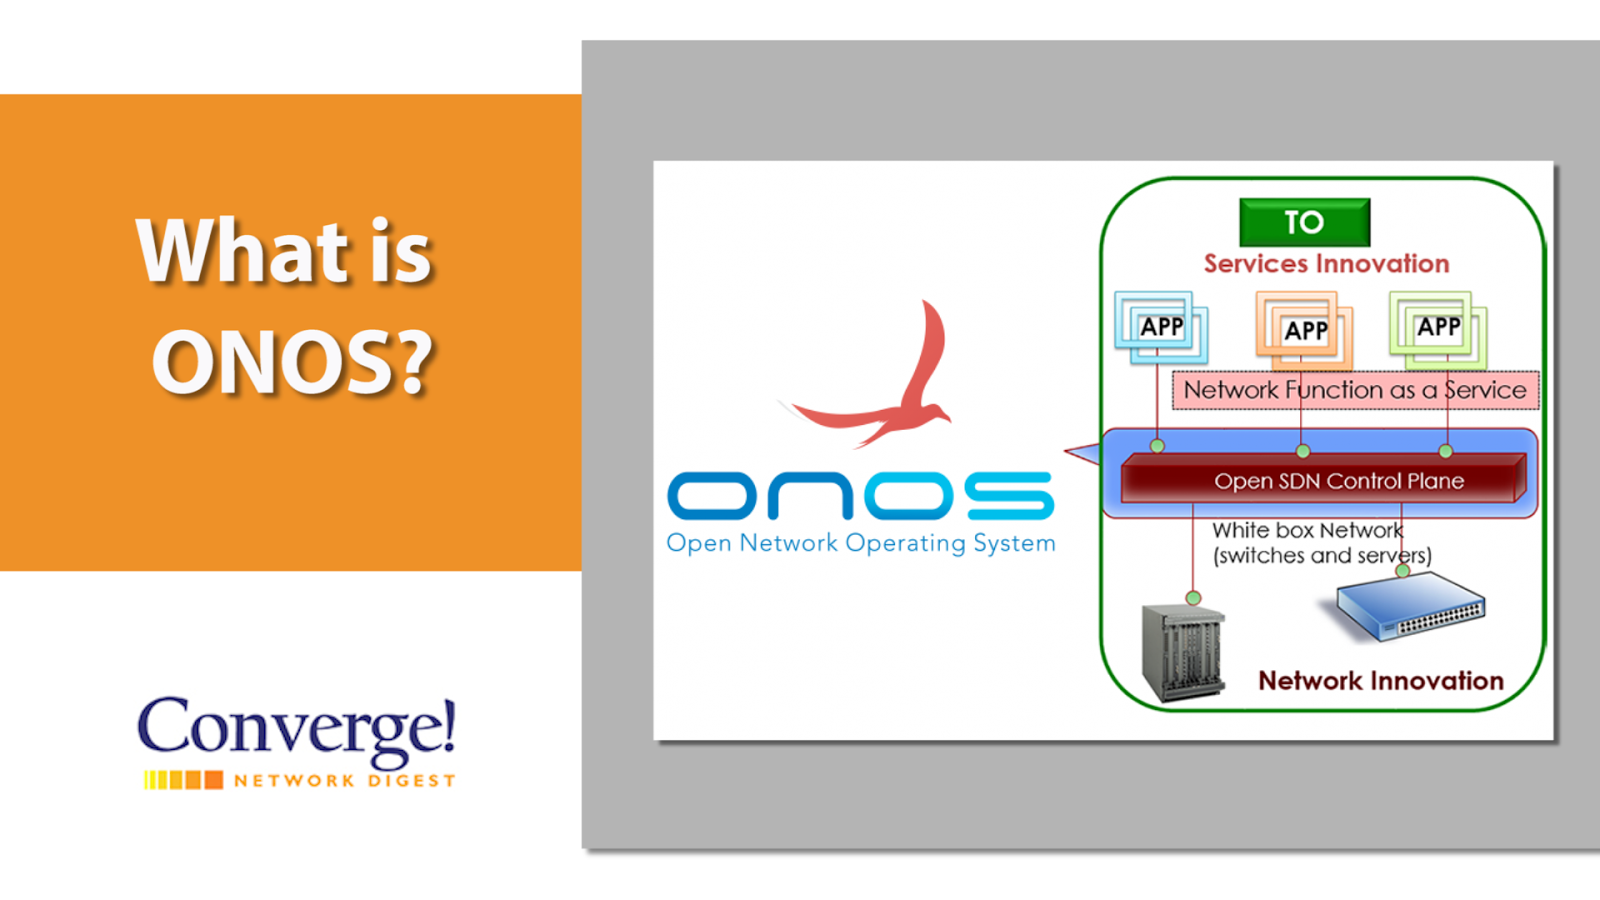 network operating system Definition of network operating system (nos): set of programs that, as a part of an operating system (os), provide file and print services, directory services, and security to computers connected via a network.